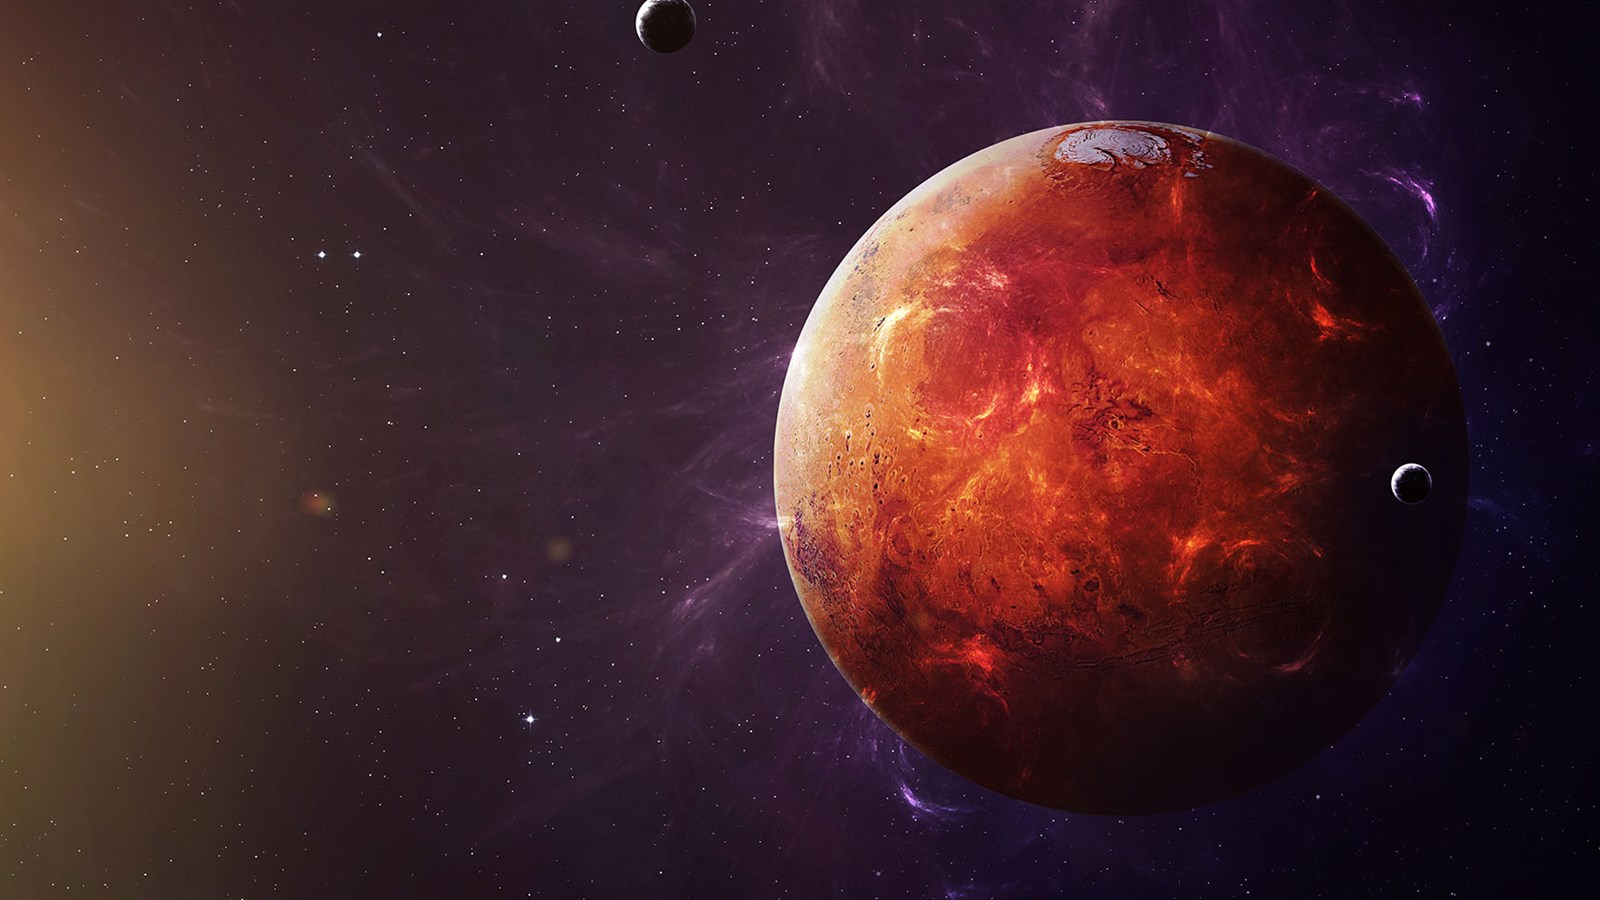 Scientists Uncover Evidence That Suggests Mars' Crust Isn't As We Thought